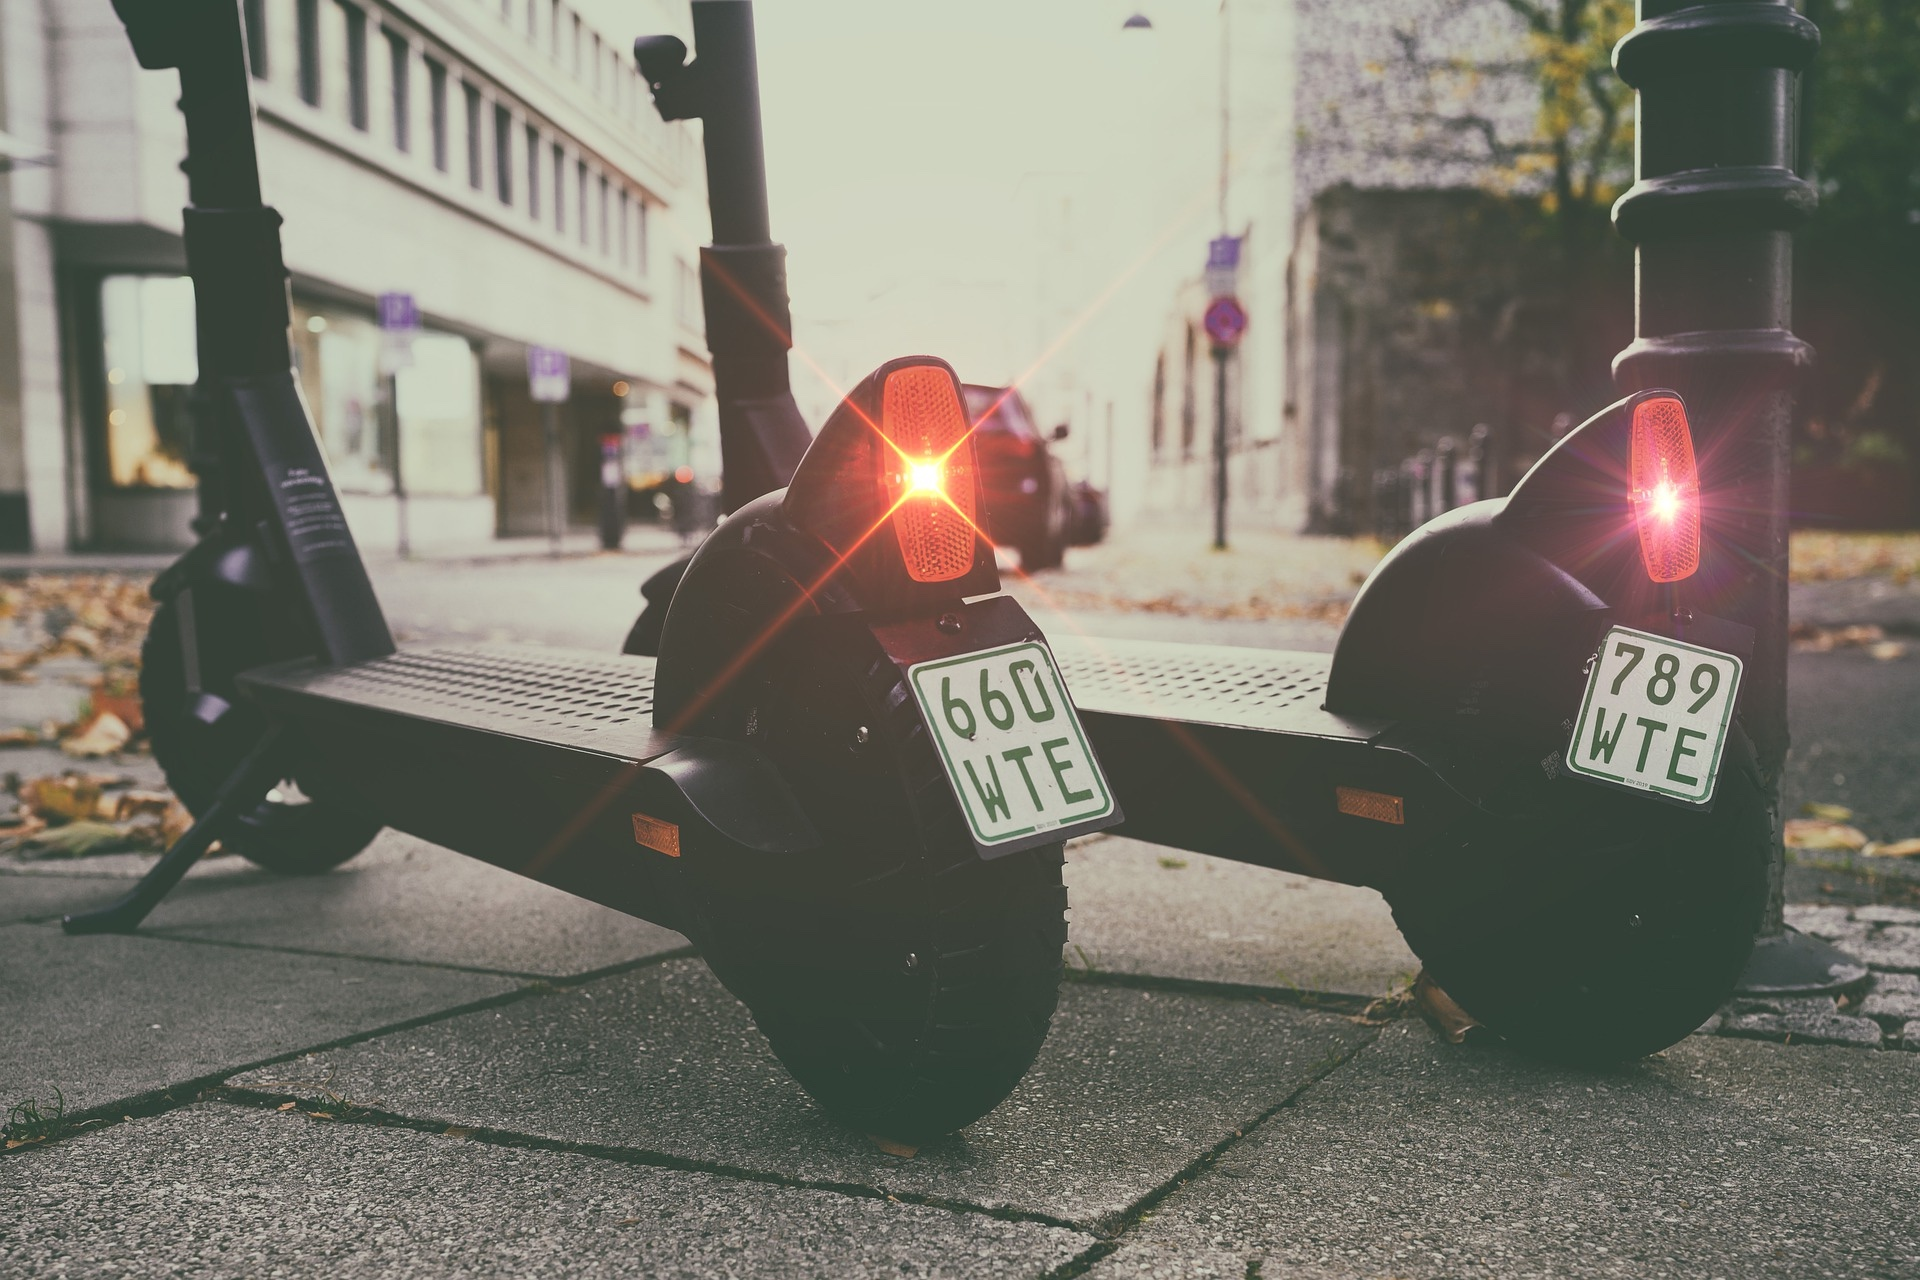 e-Scooters are slowly emerging as a solution for courier services